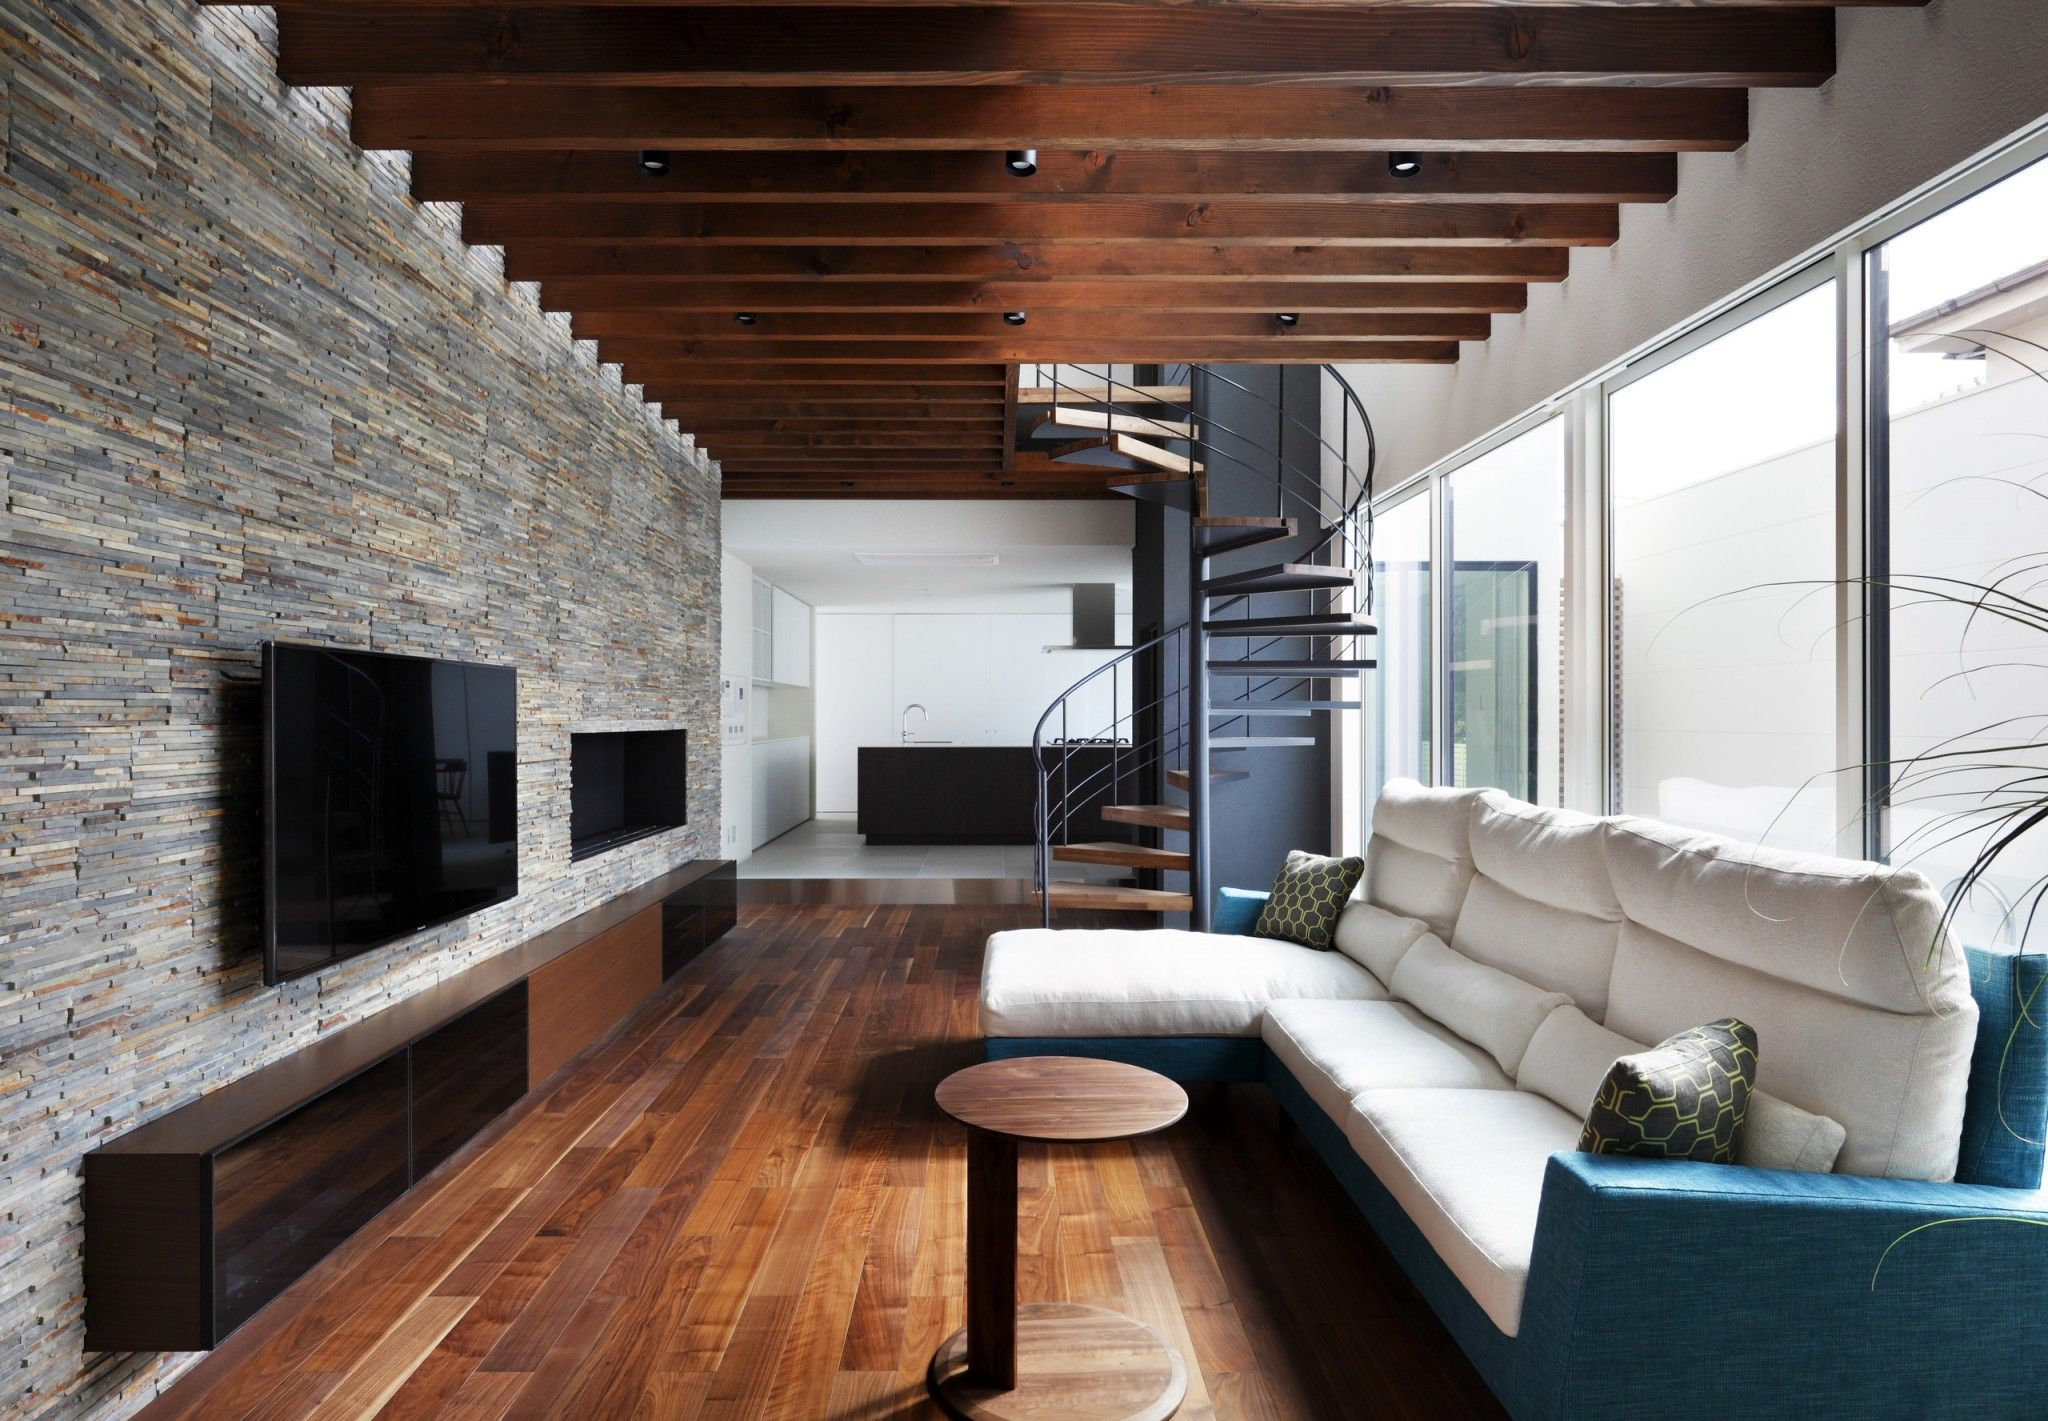 Modern Interior Design Laminate Use. Dark ceiling beams make a composition in the lost living with the wooden hidden spiral stairs